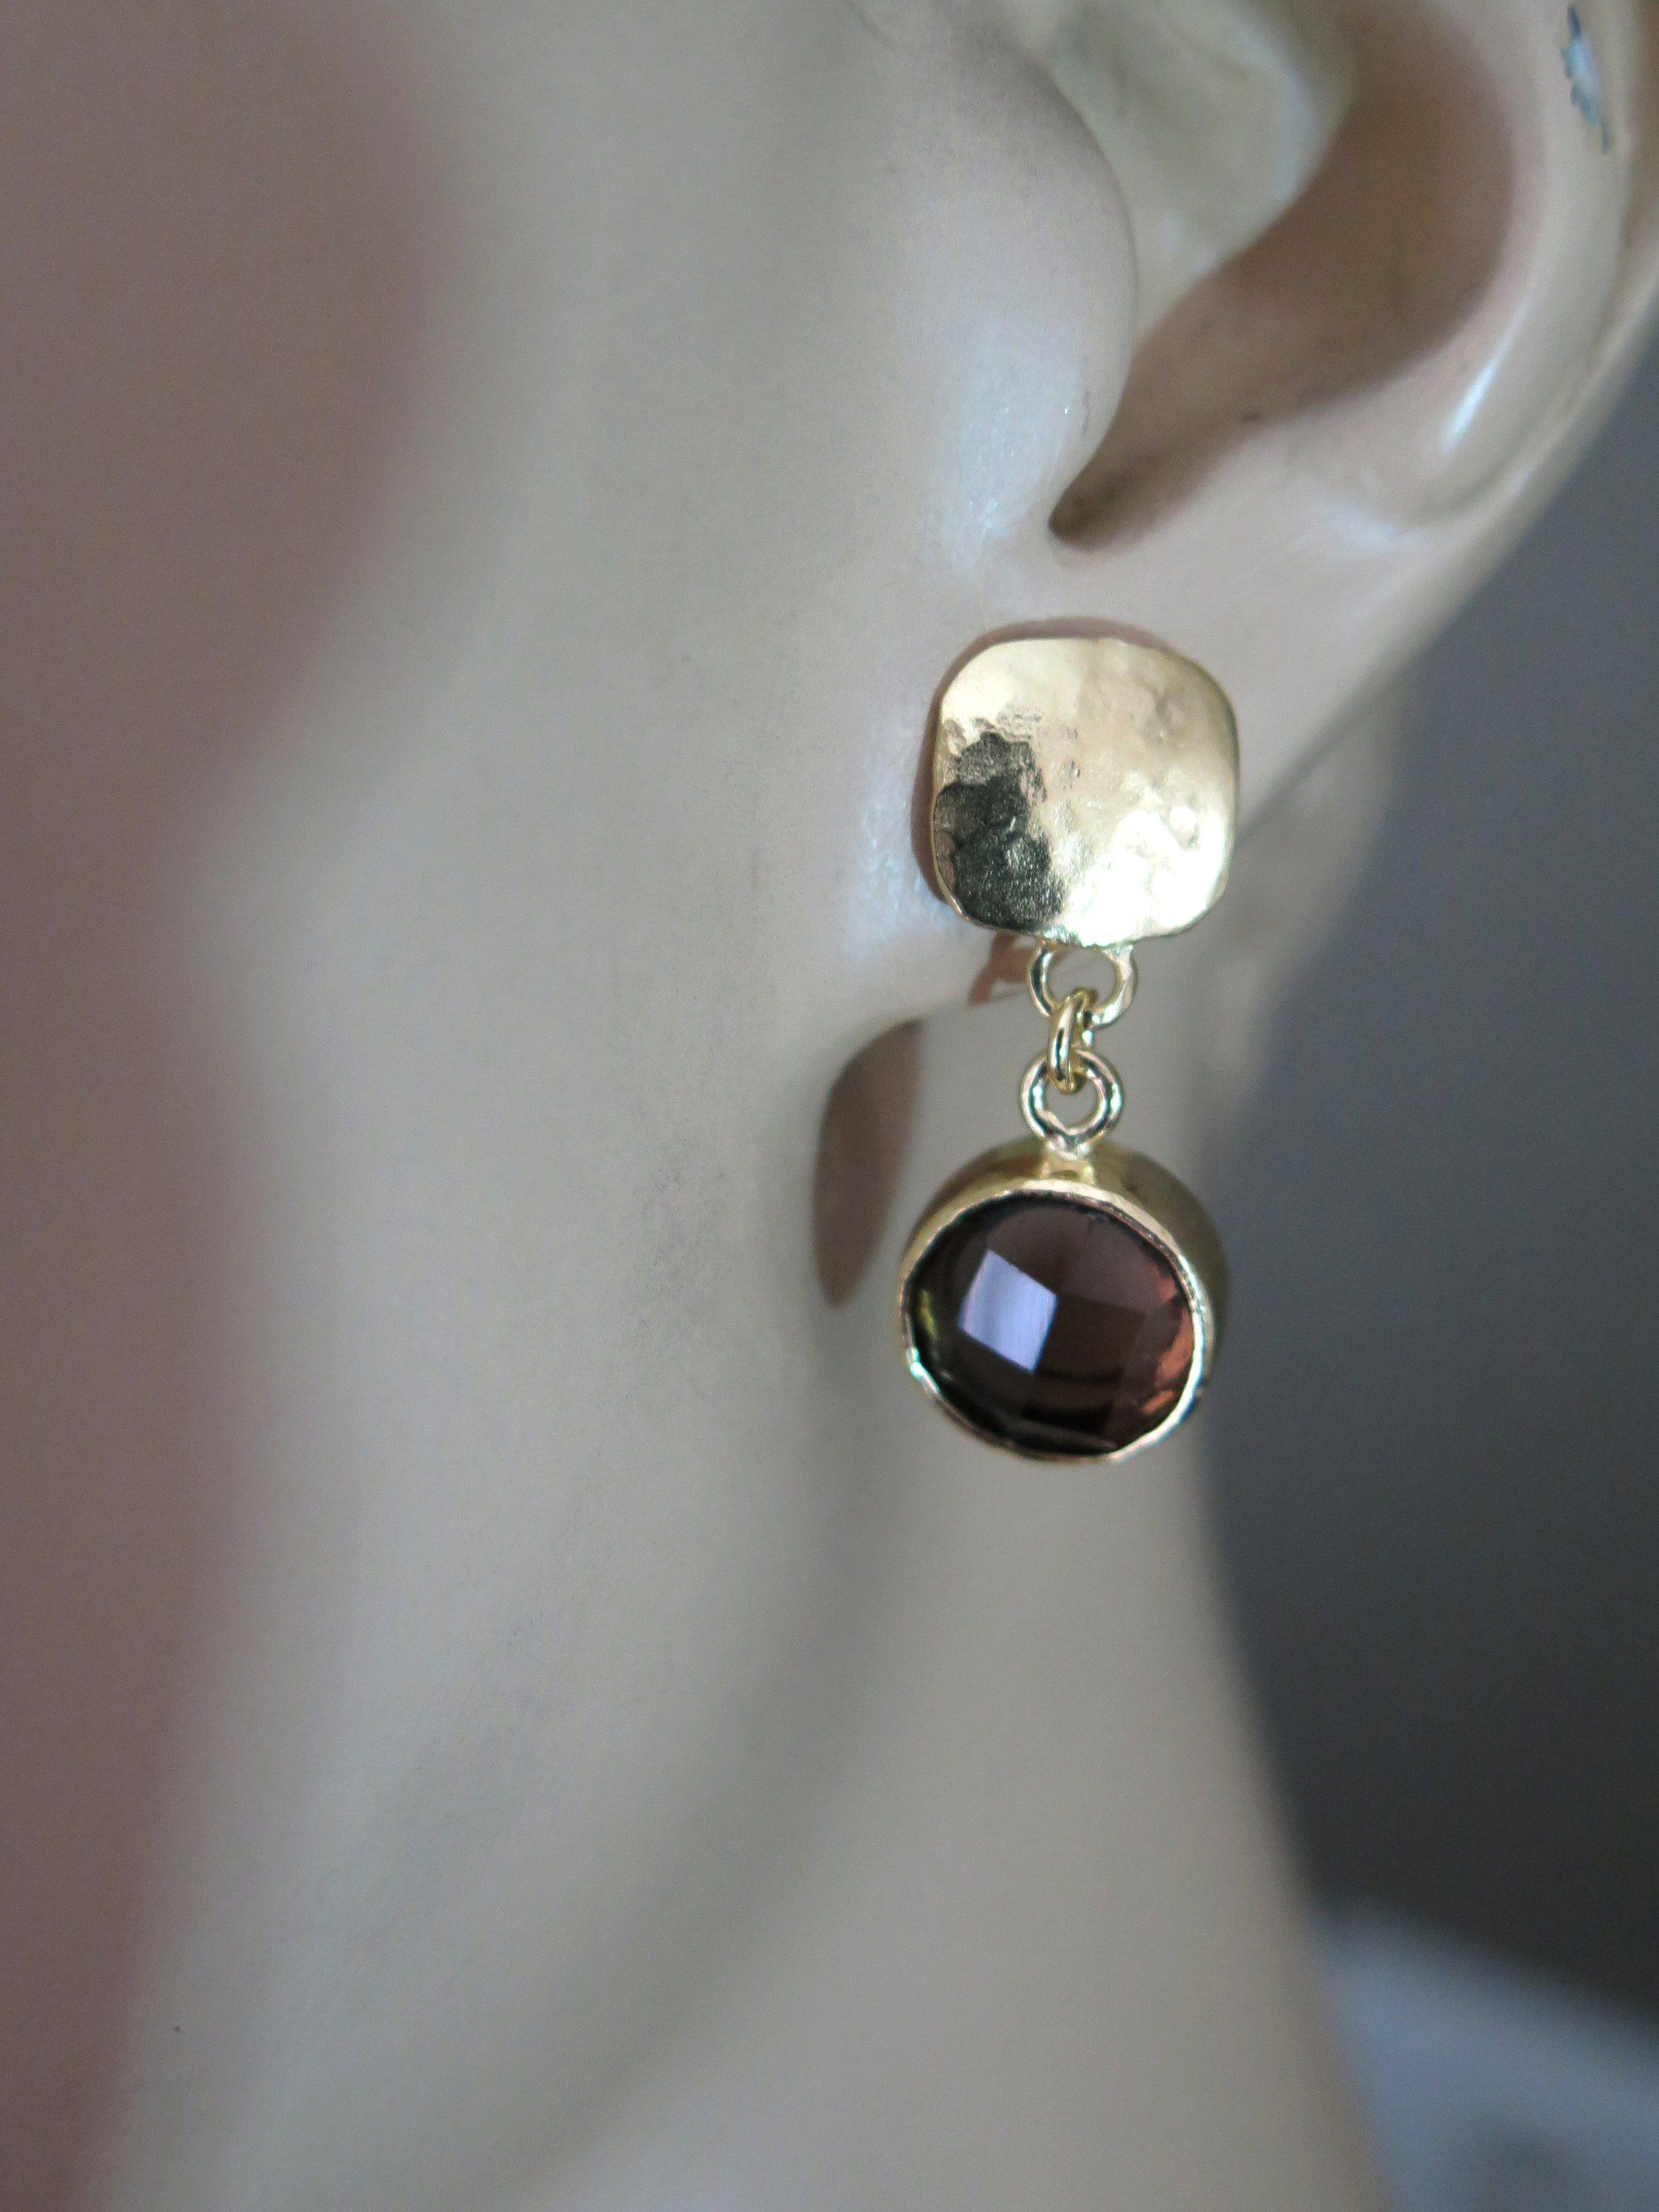 65e734bf6 Gold stud dangles with stones - #etsy shop: Smoky Quartz Earrings,Gold  Dangle